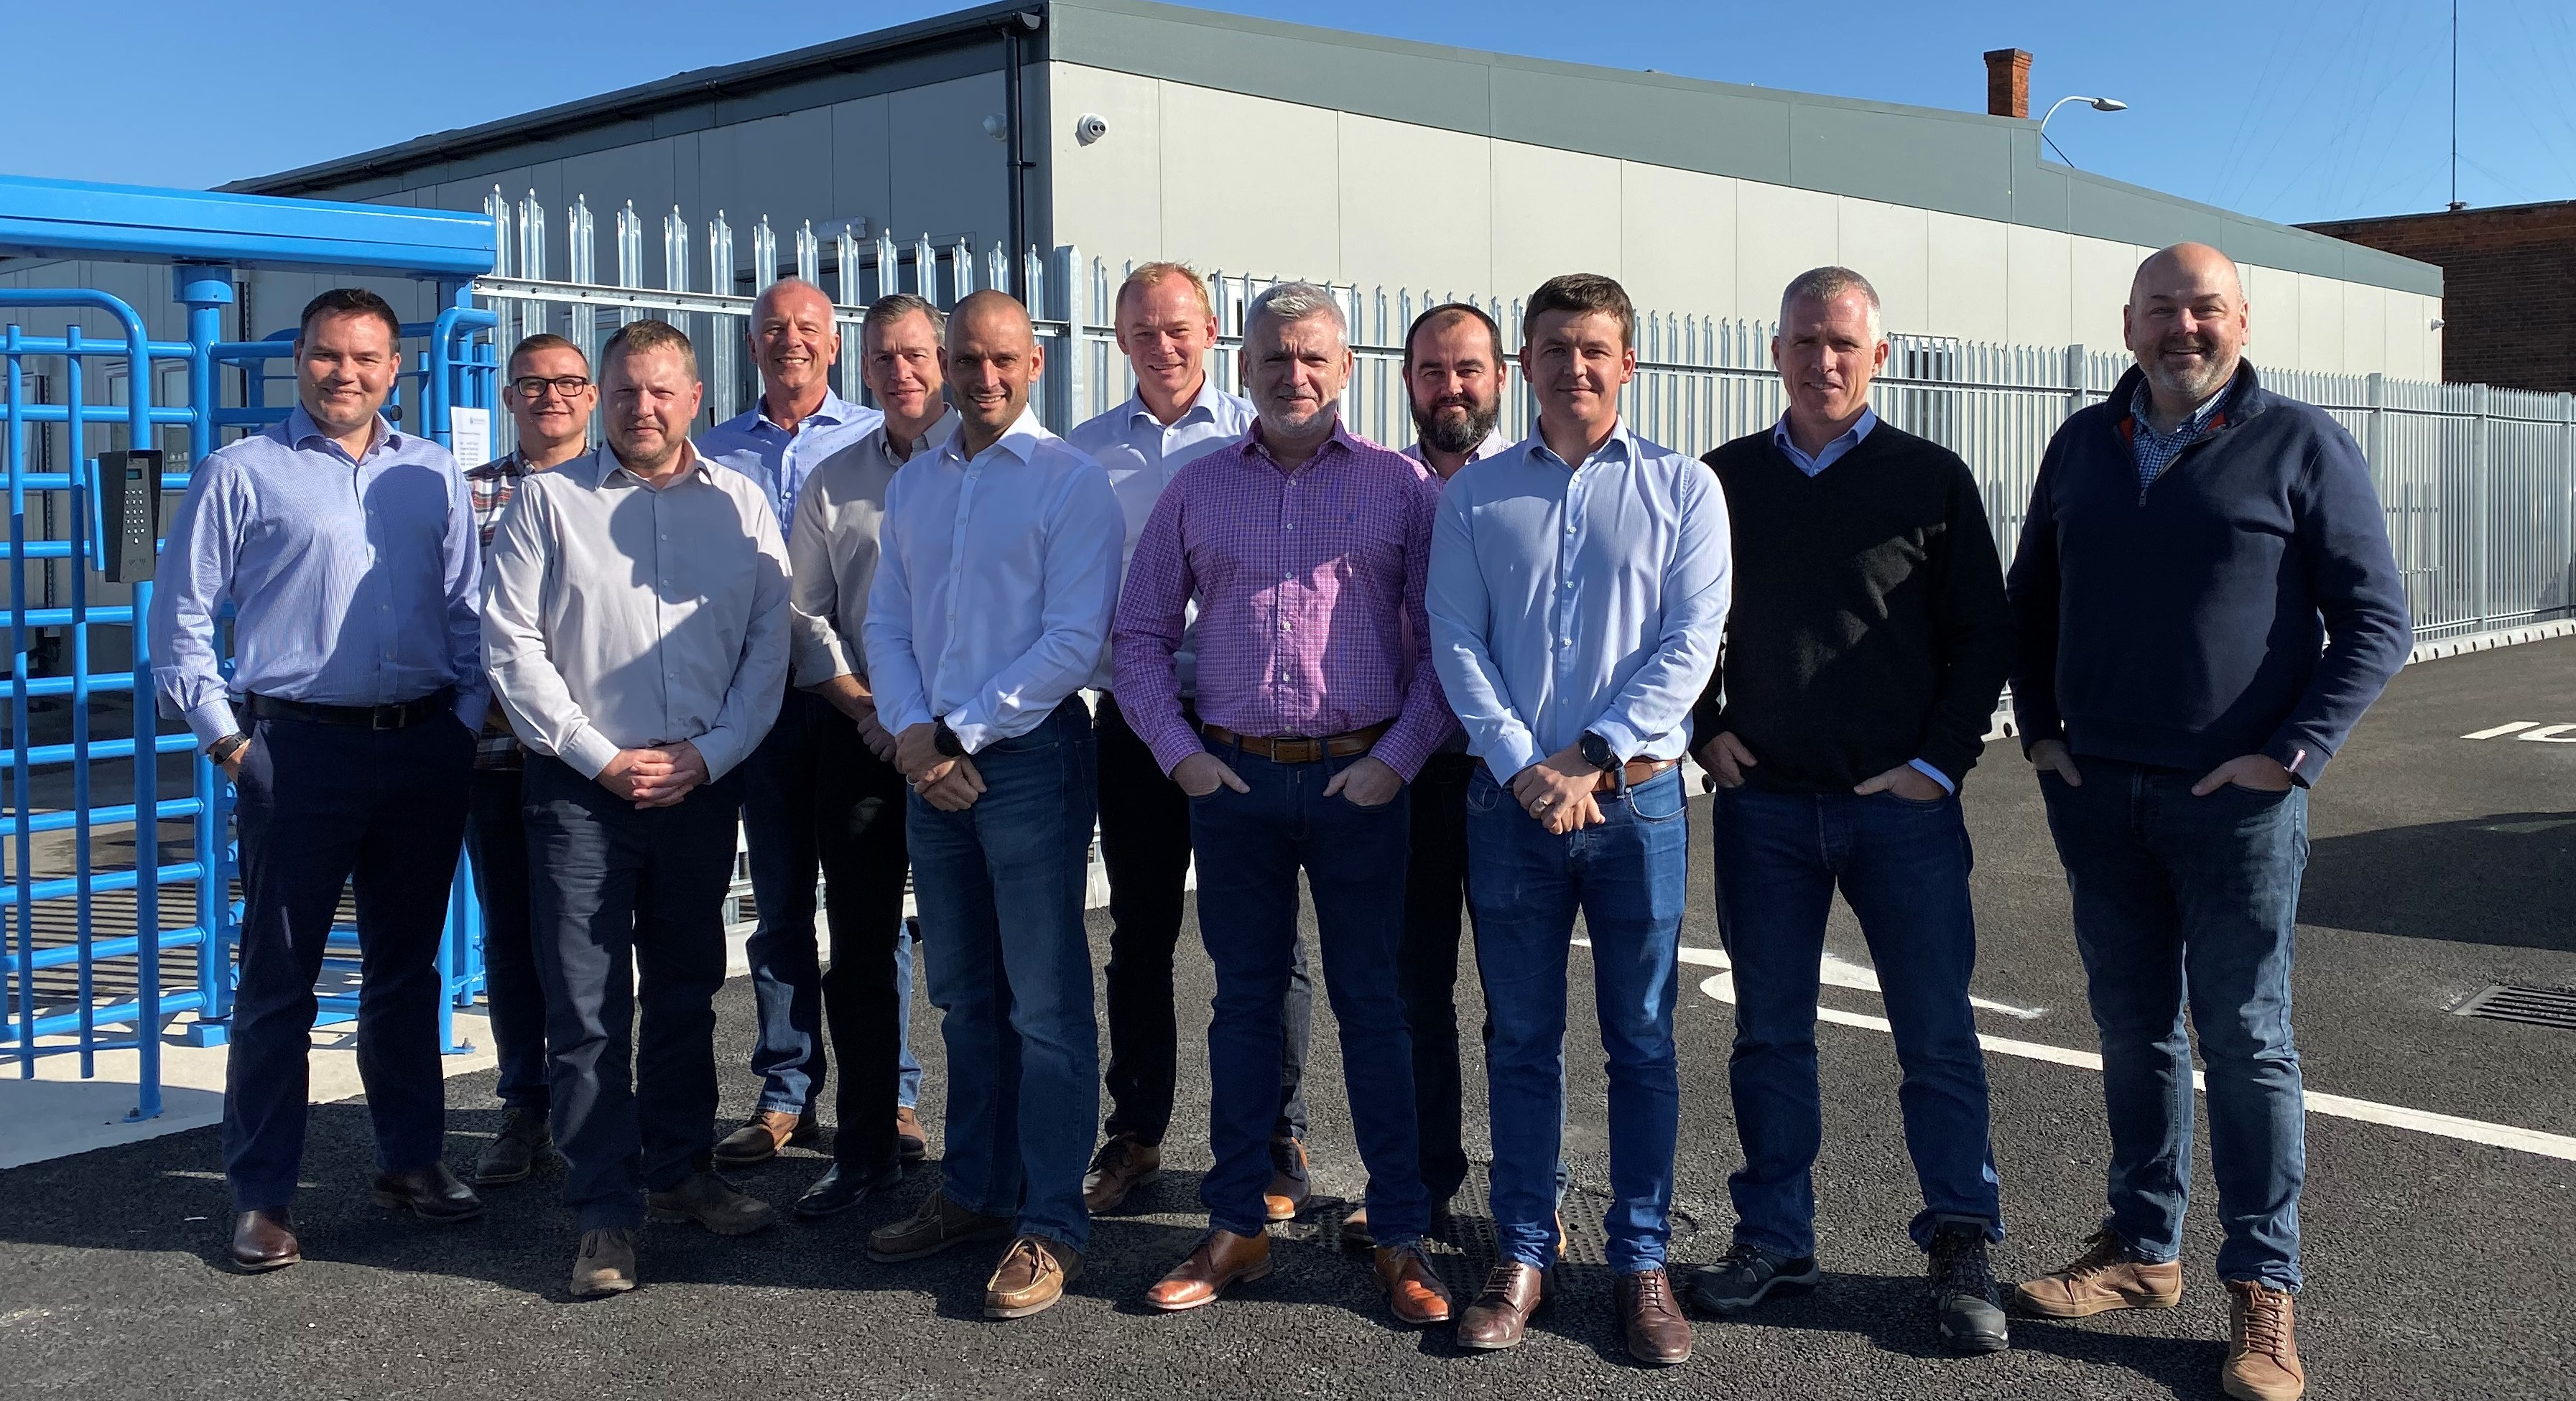 Offshore team is first into Grimsby as local recruitment continues